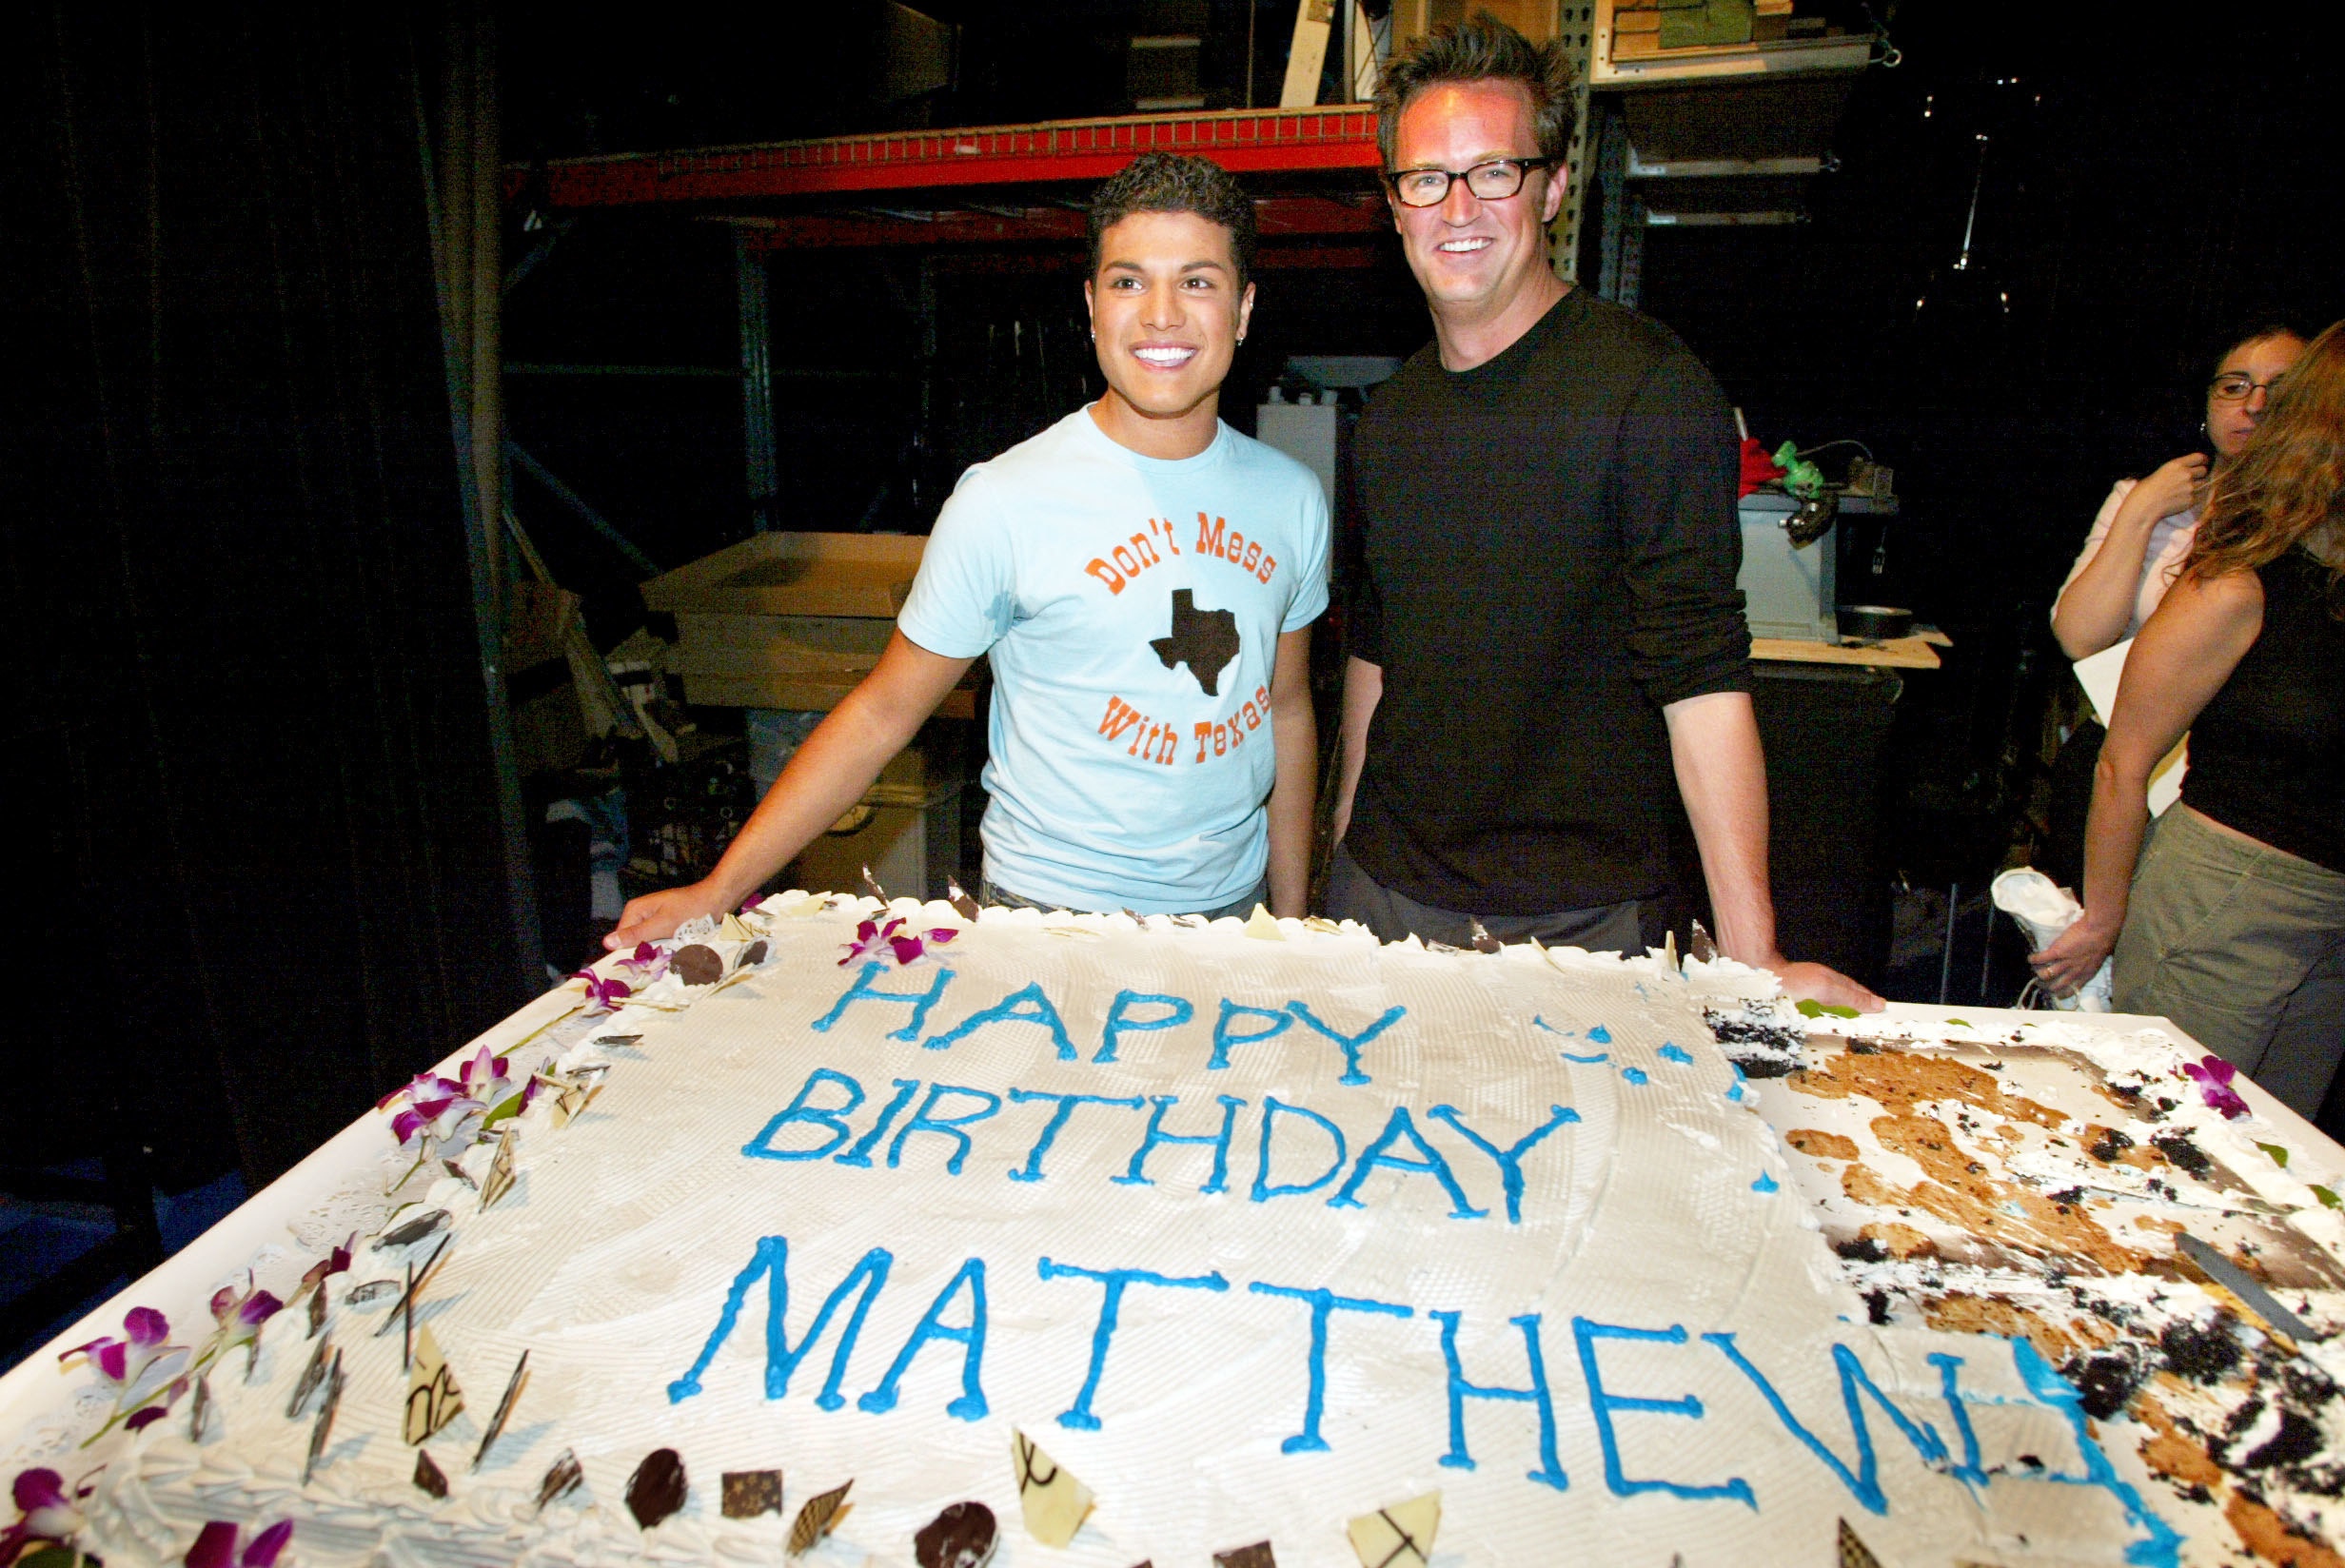 Matthew Perry poses by a giant sheet cake that reads Happy Birthday Matthew